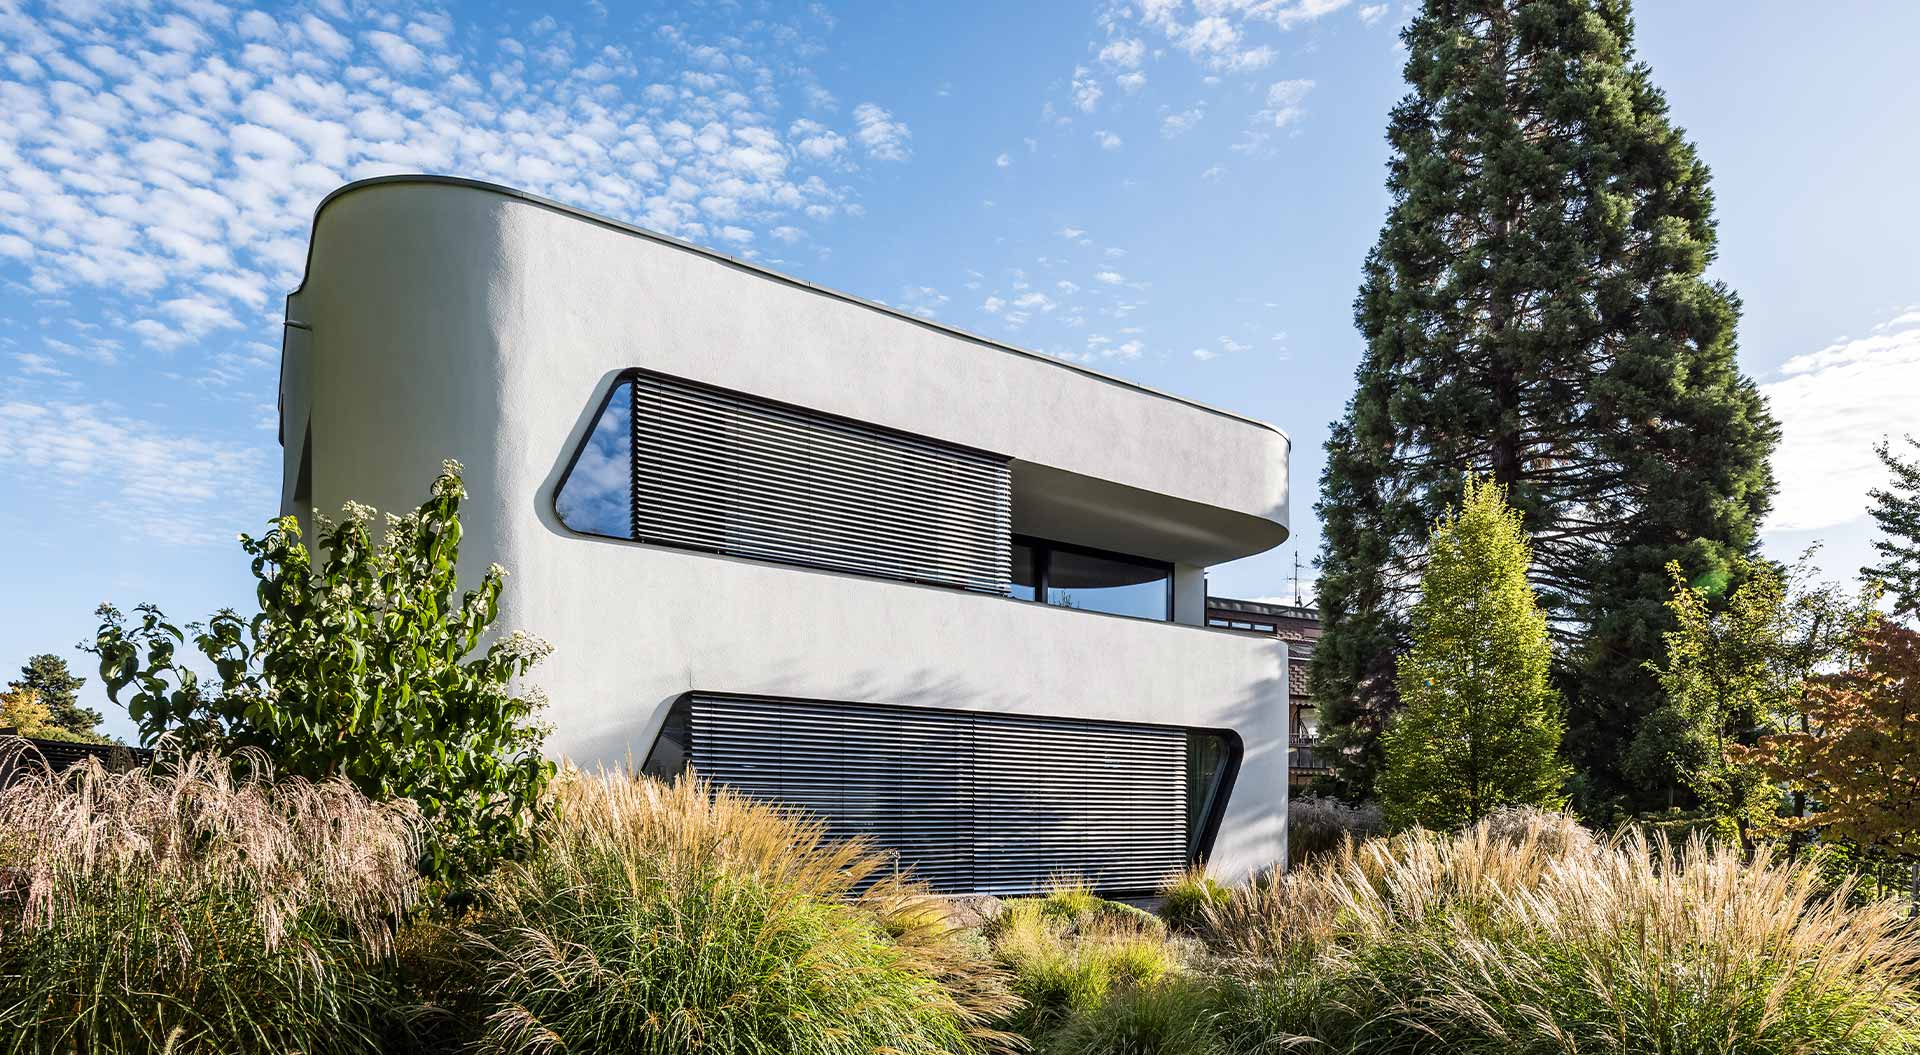 Modern residential house blends under a blue sky into the surroundings of plants and trees